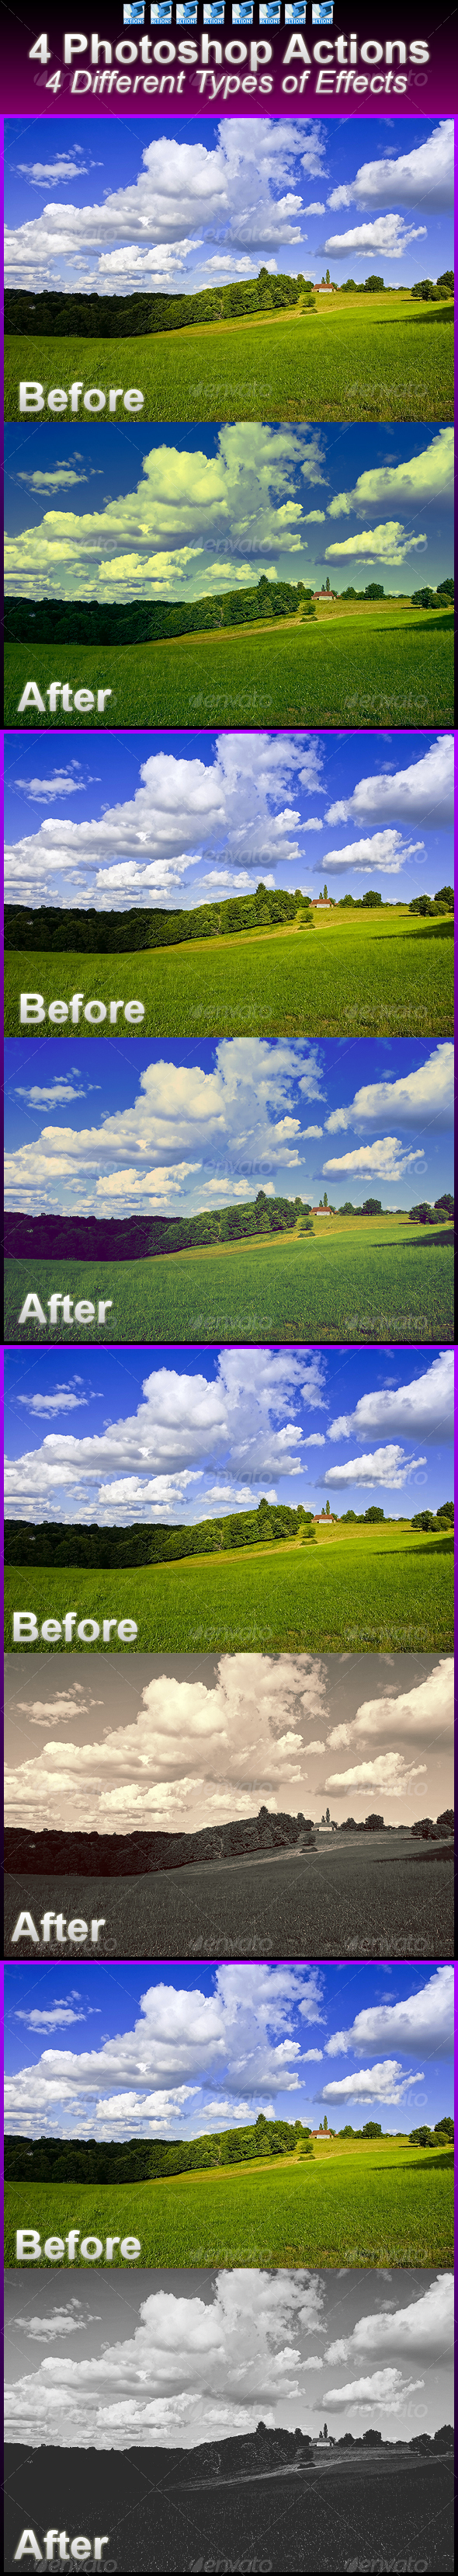 4 Super Effects (Actions) - Photoshop Add-ons